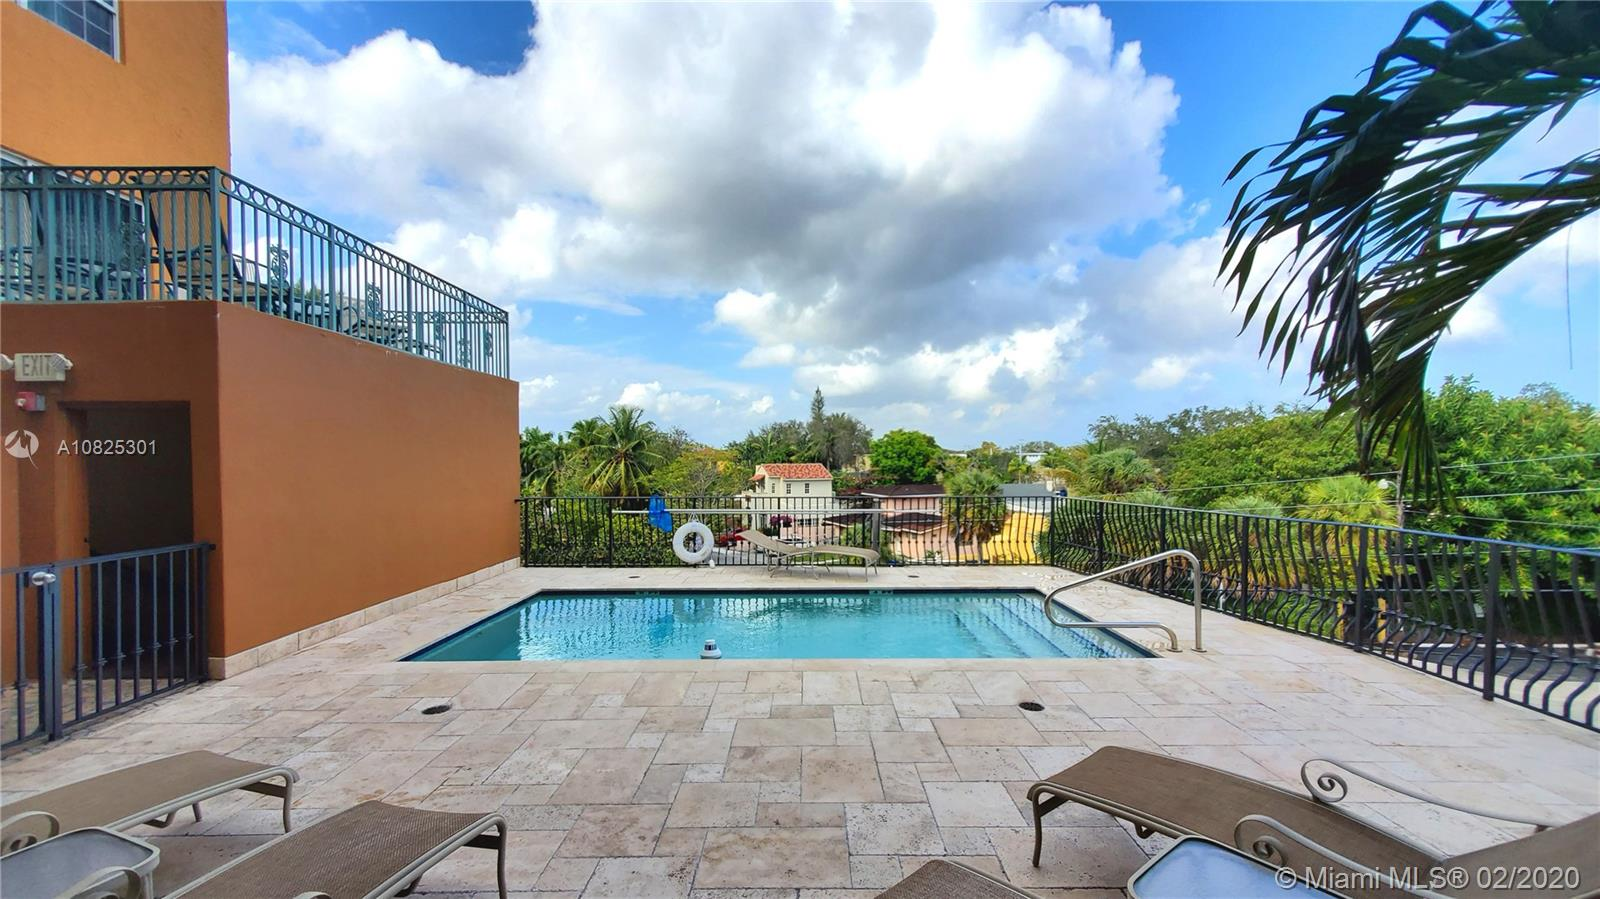 1111 E Las Olas Blvd, #401/402, Fort Lauderdale, FL 33301 | ONE Sotheby's International Realty